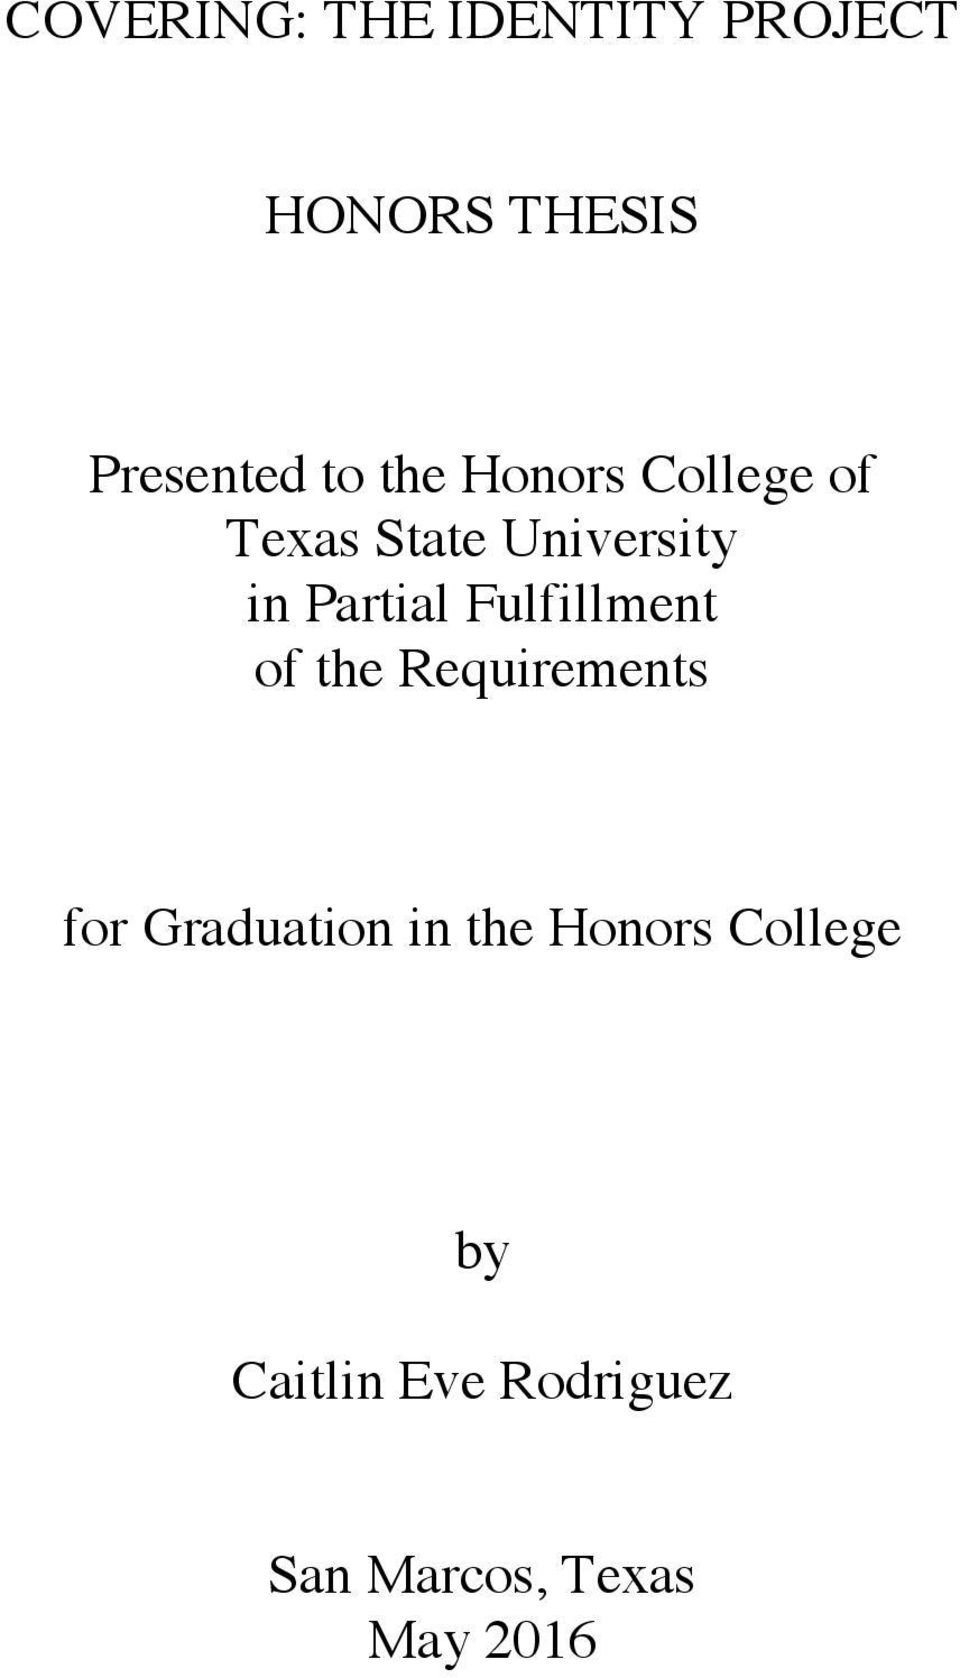 Fulfillment of the Requirements for Graduation in the